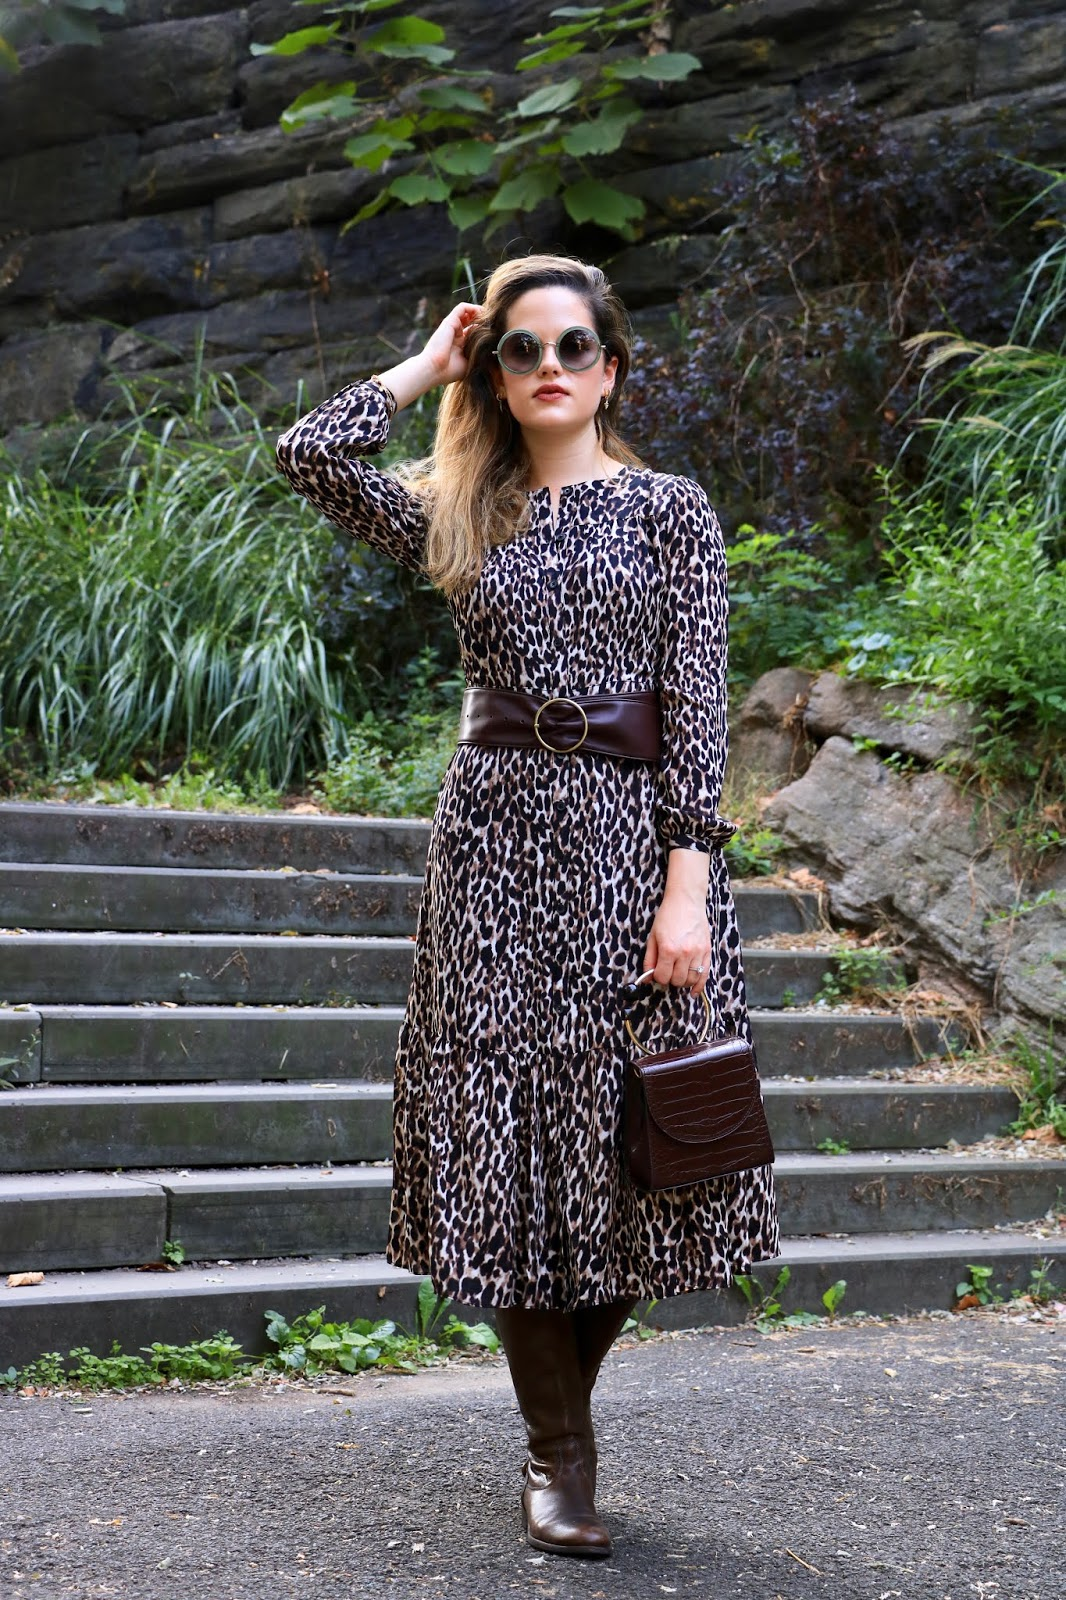 Nyc fashion blogger Kathleen Harper wearing a fall outfit of a midi dress and leather boots.